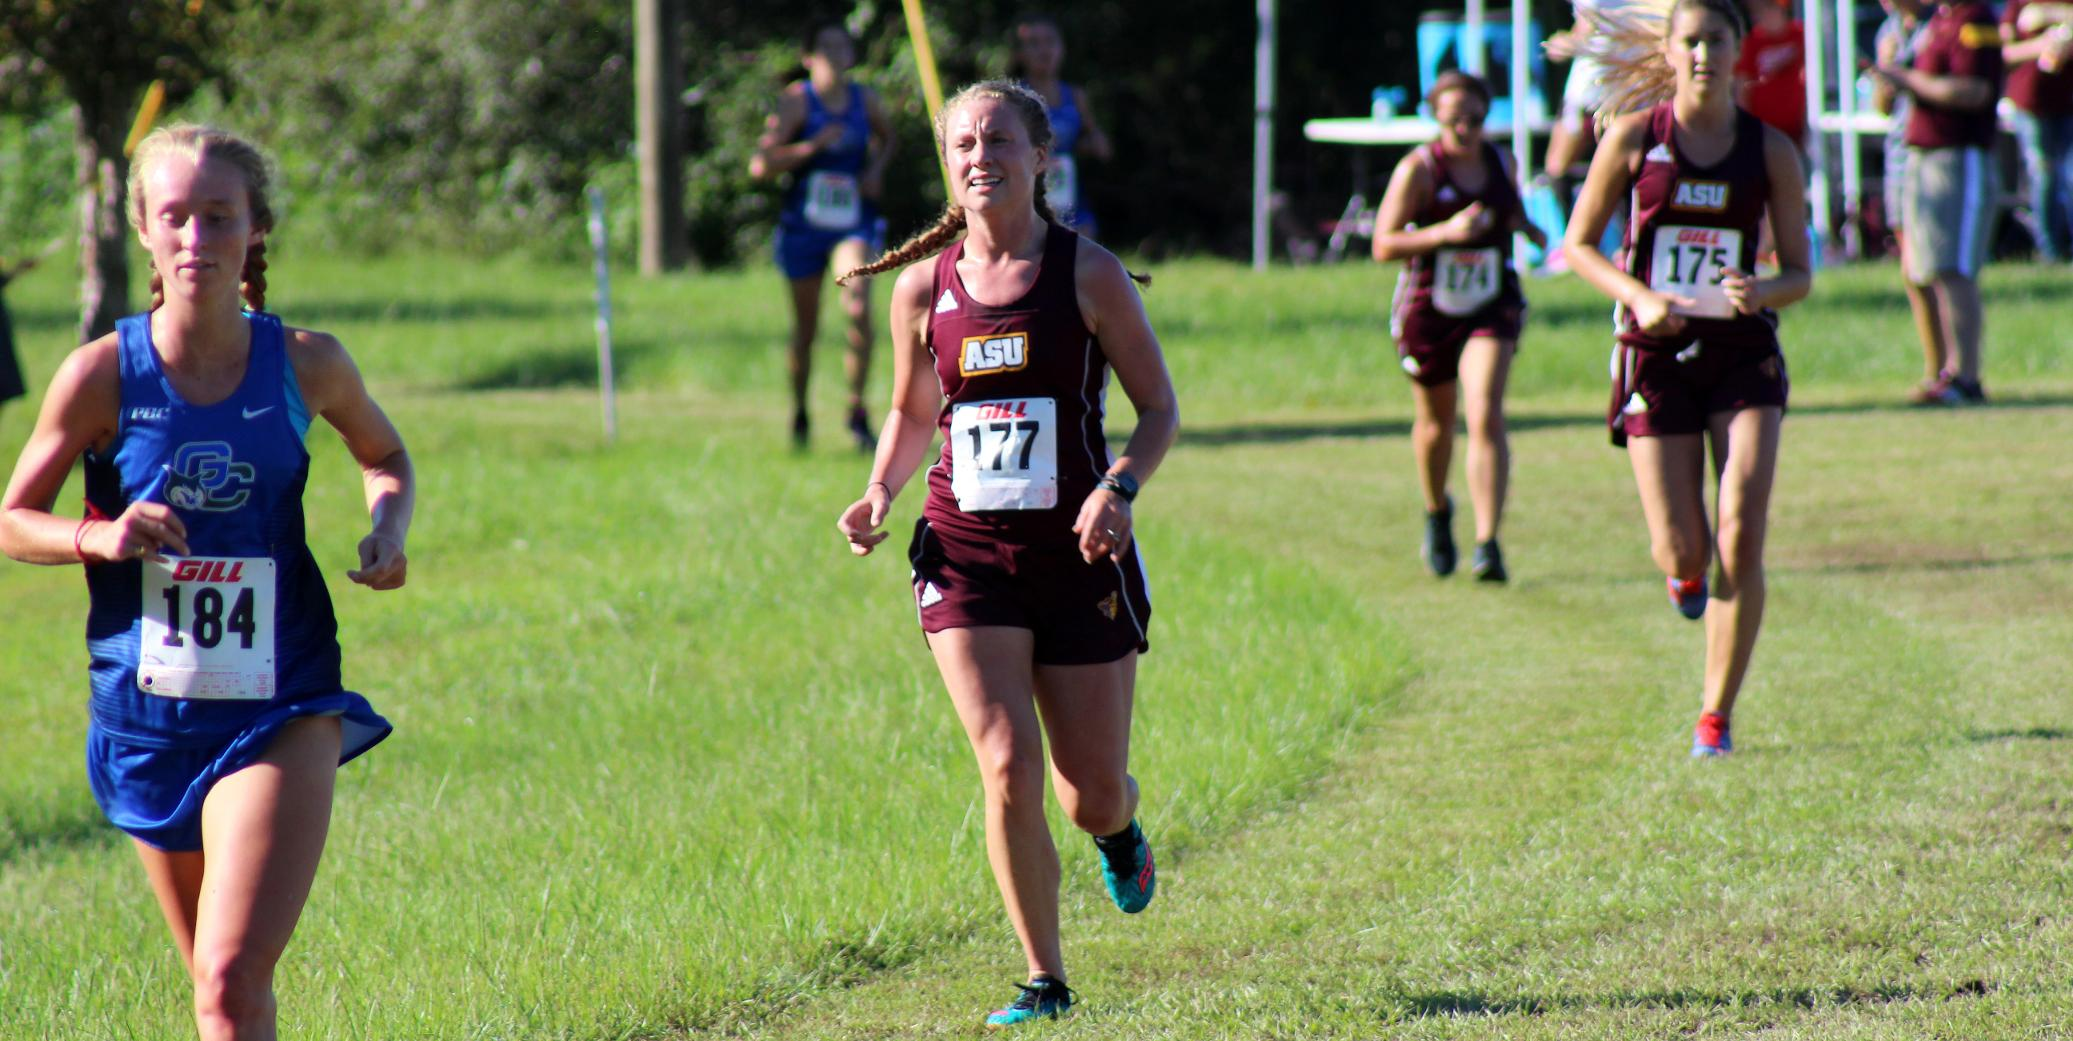 Women's Cross Country Runs 20th At NCAA Regionals In First Appearance Since 2000